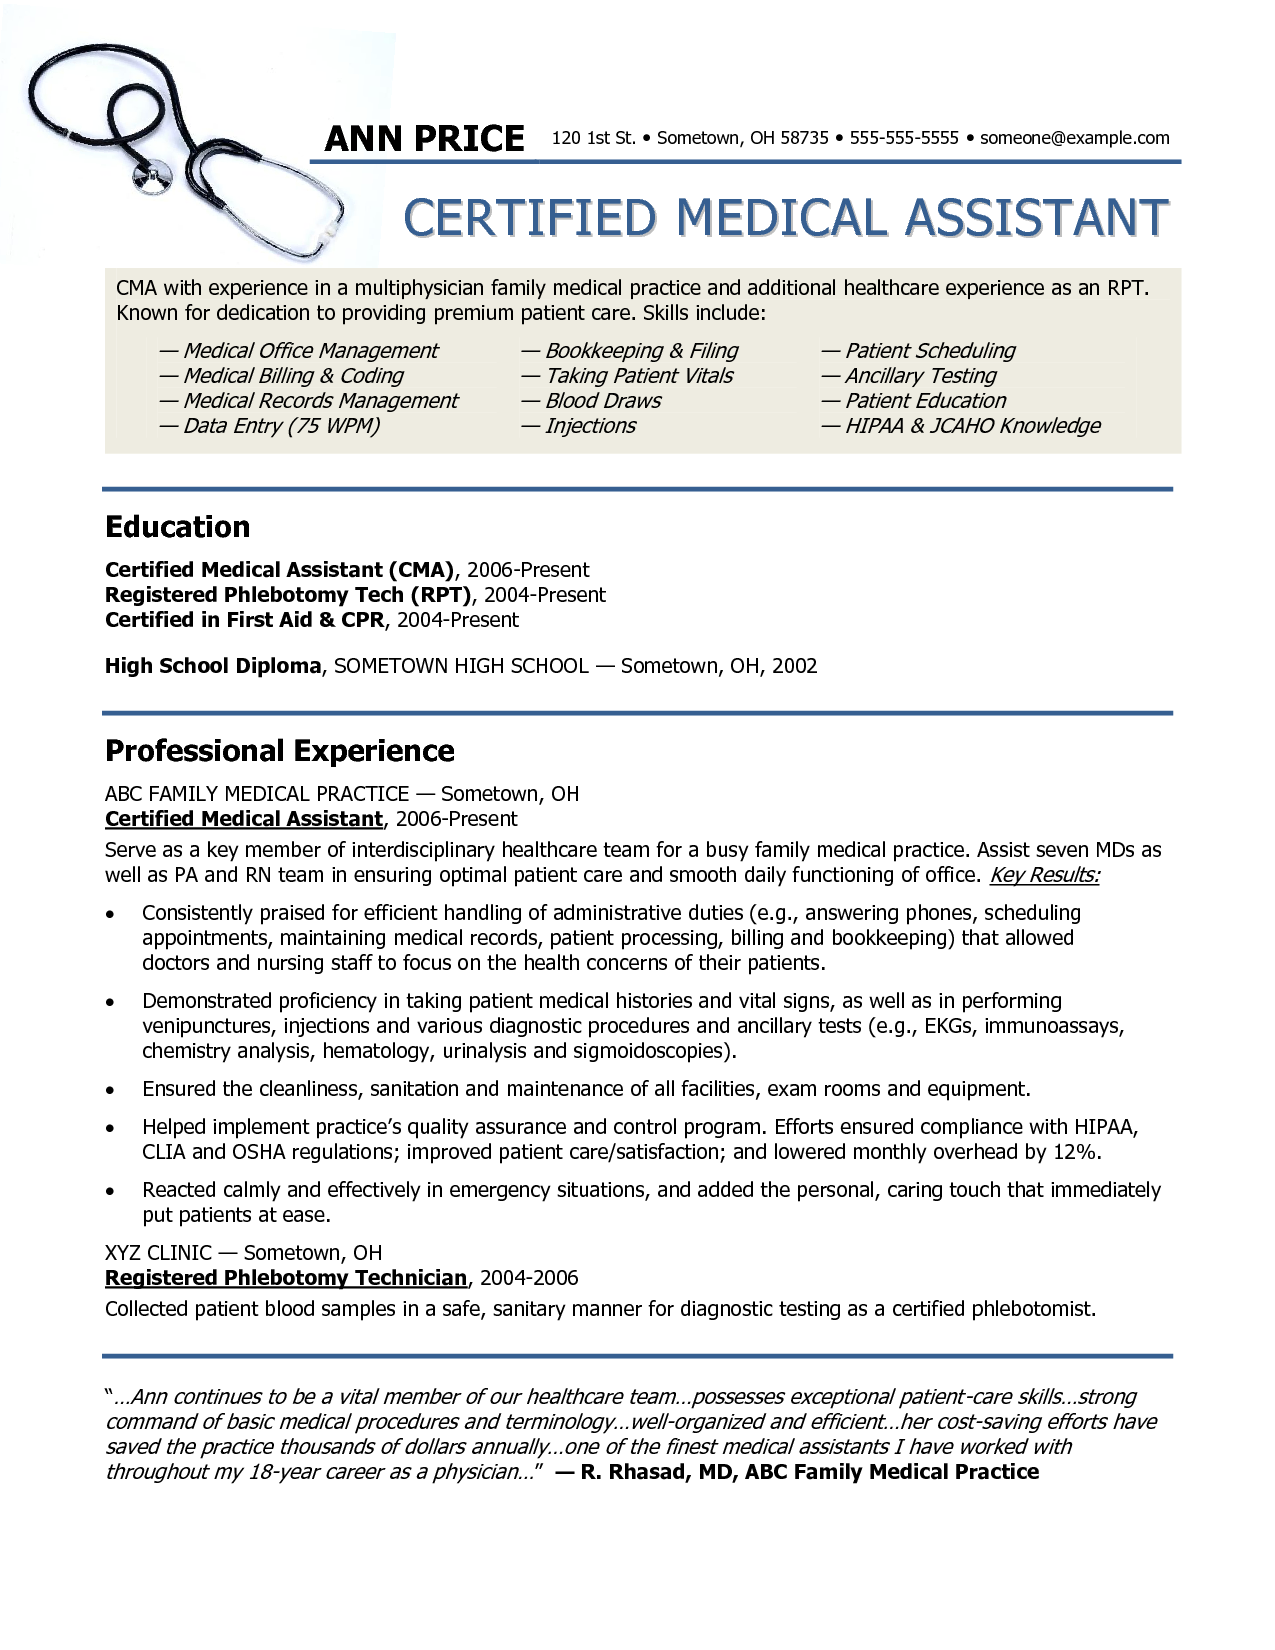 Medical Assistant Resume Template Resume Examples Example Of Medical Assistant Resume Regular